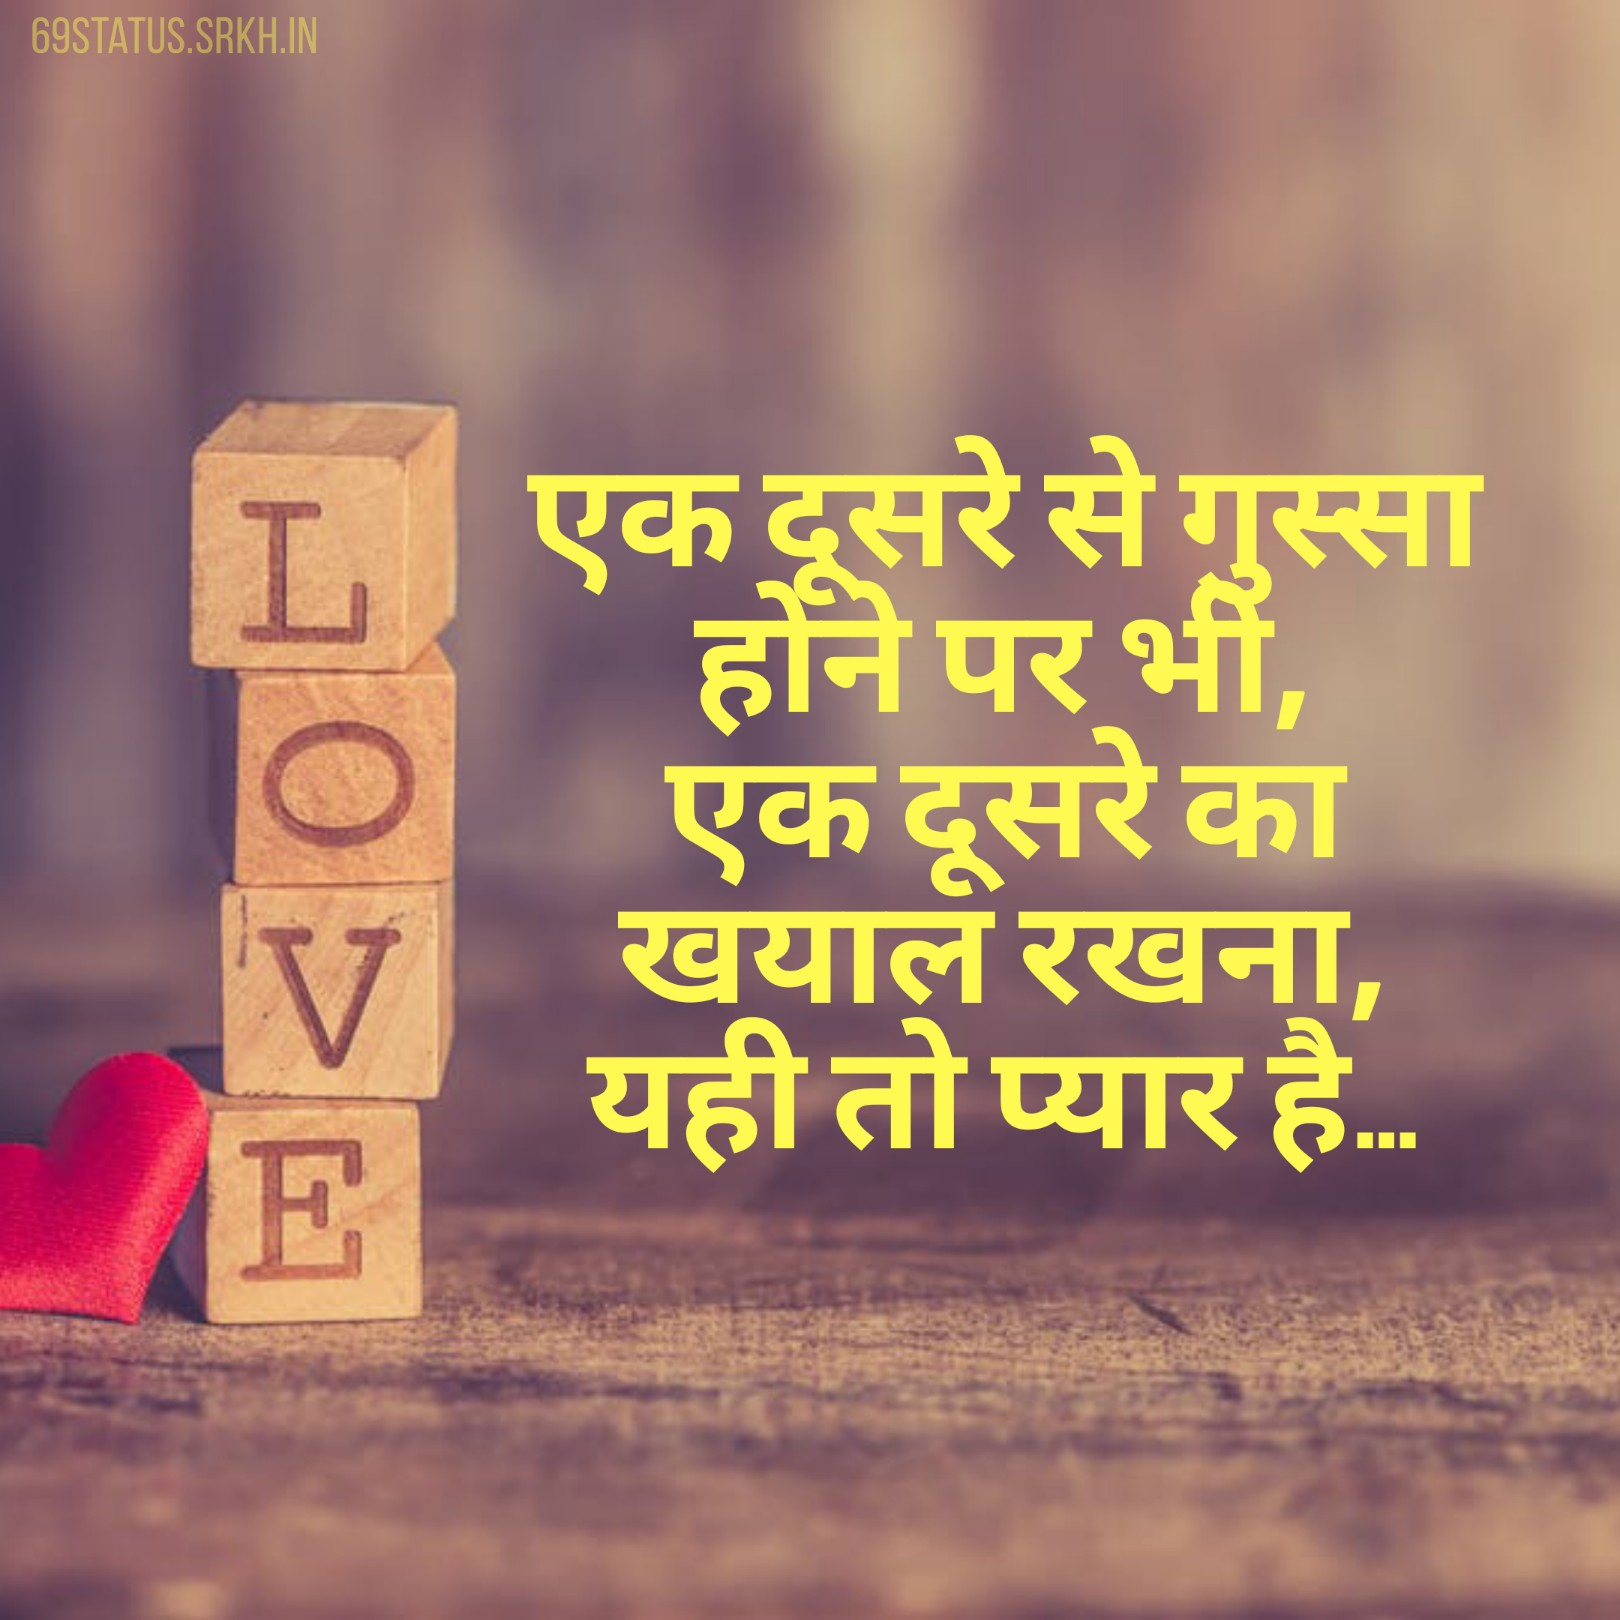 Love Image with Message in Hindi full HD free download.